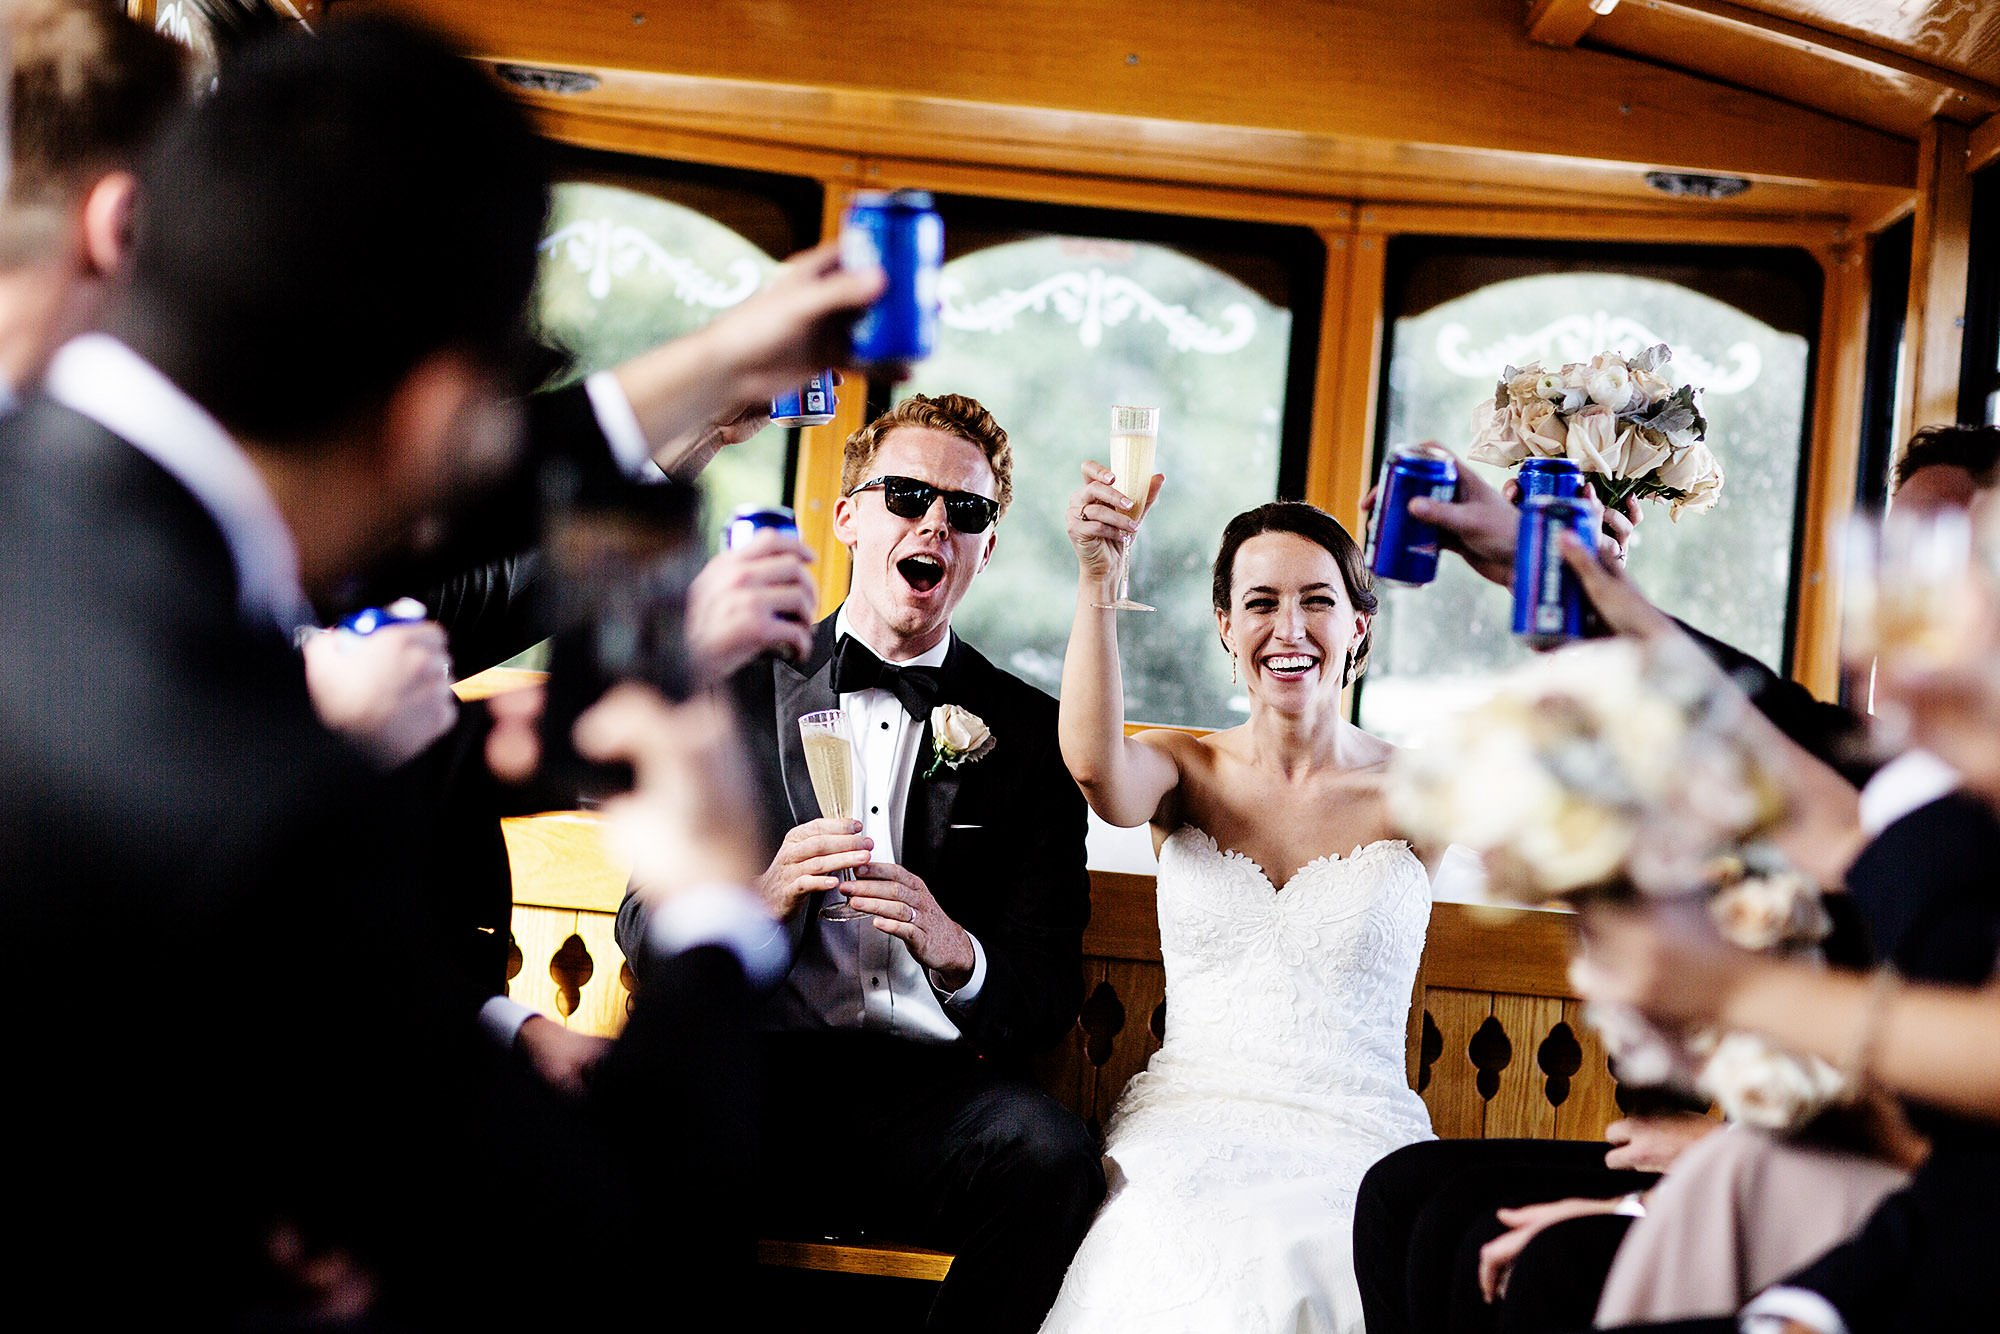 The wedding party cheers on board a trolley following the ceremony on Cape Cod.